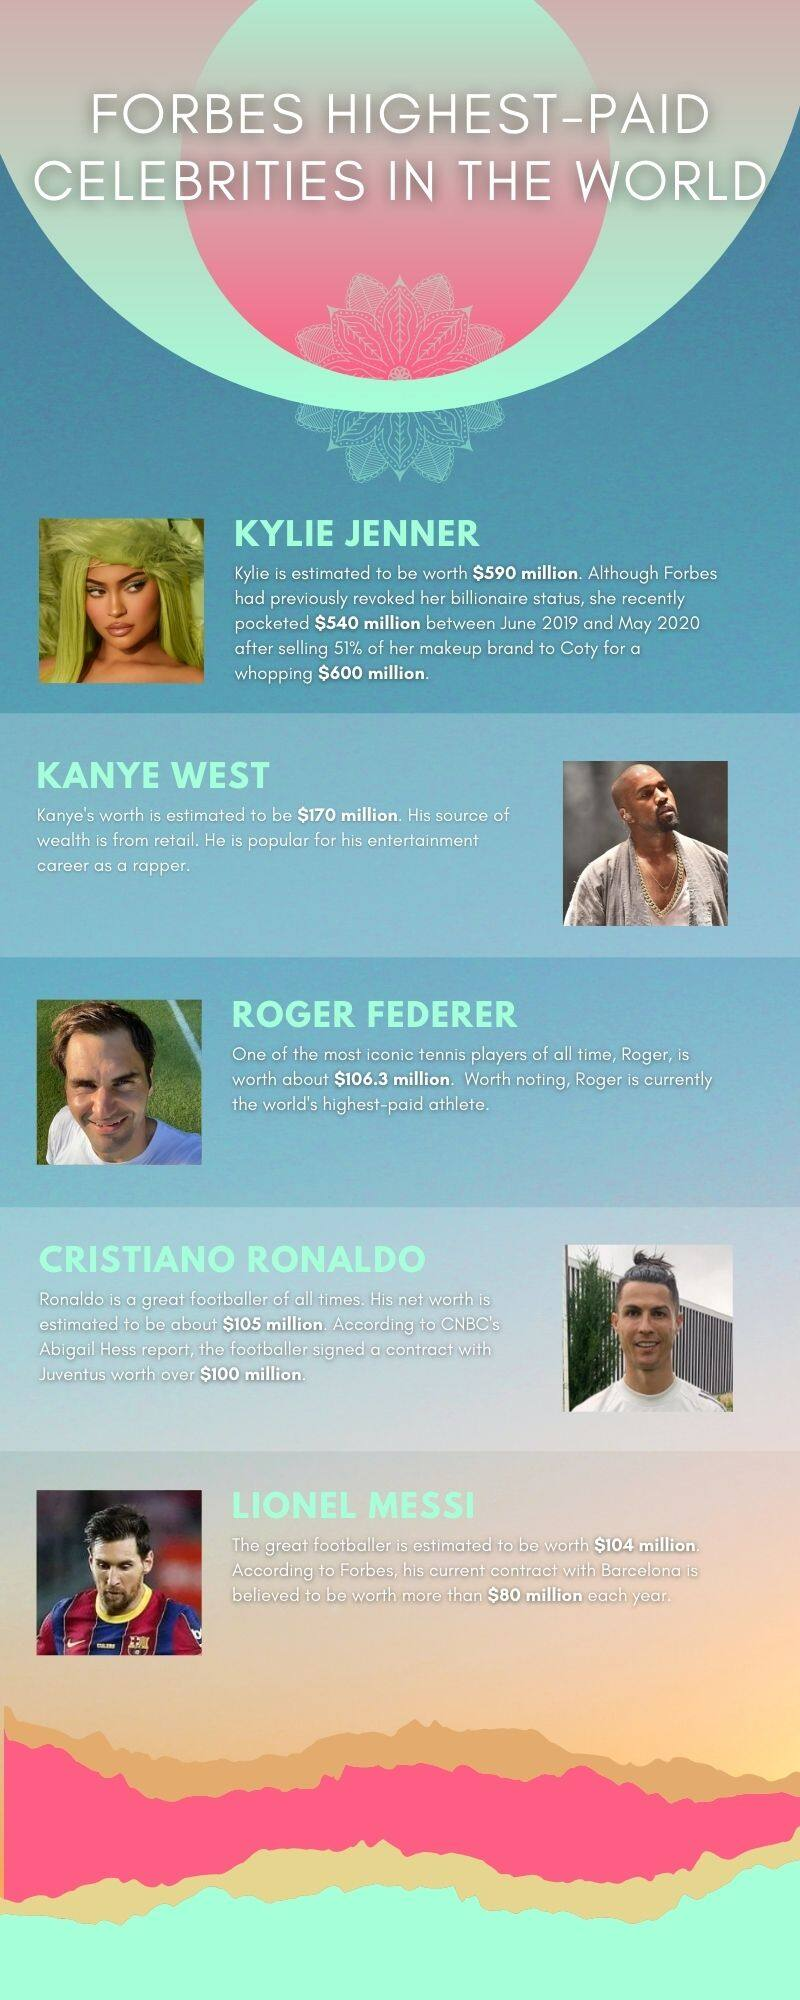 Forbes highest-paid celebrities in the world